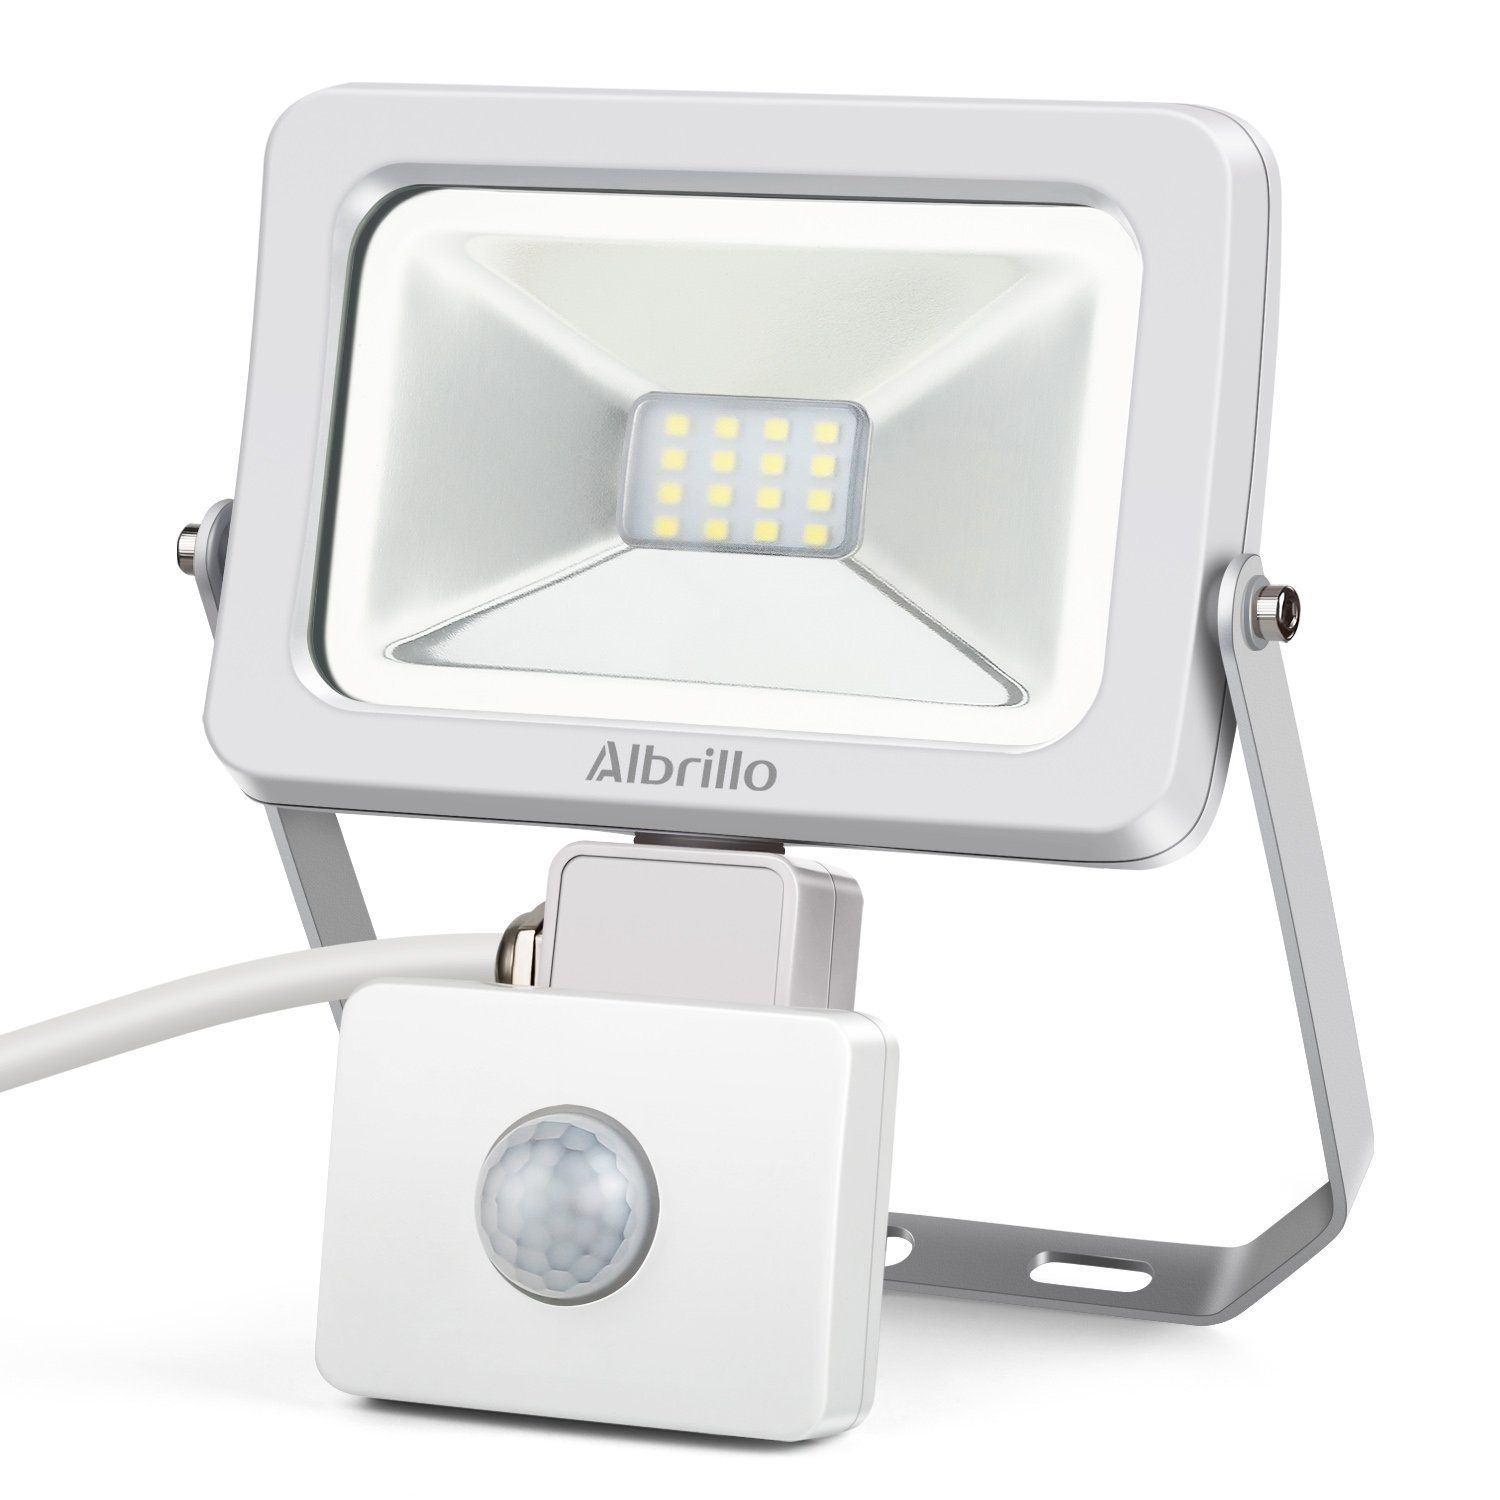 Albrillo led flood lights outdoor motion sensor light 10w 100 watt albrillo led flood lights outdoor motion sensor light 10w 100 watt equivalent outside security aloadofball Image collections